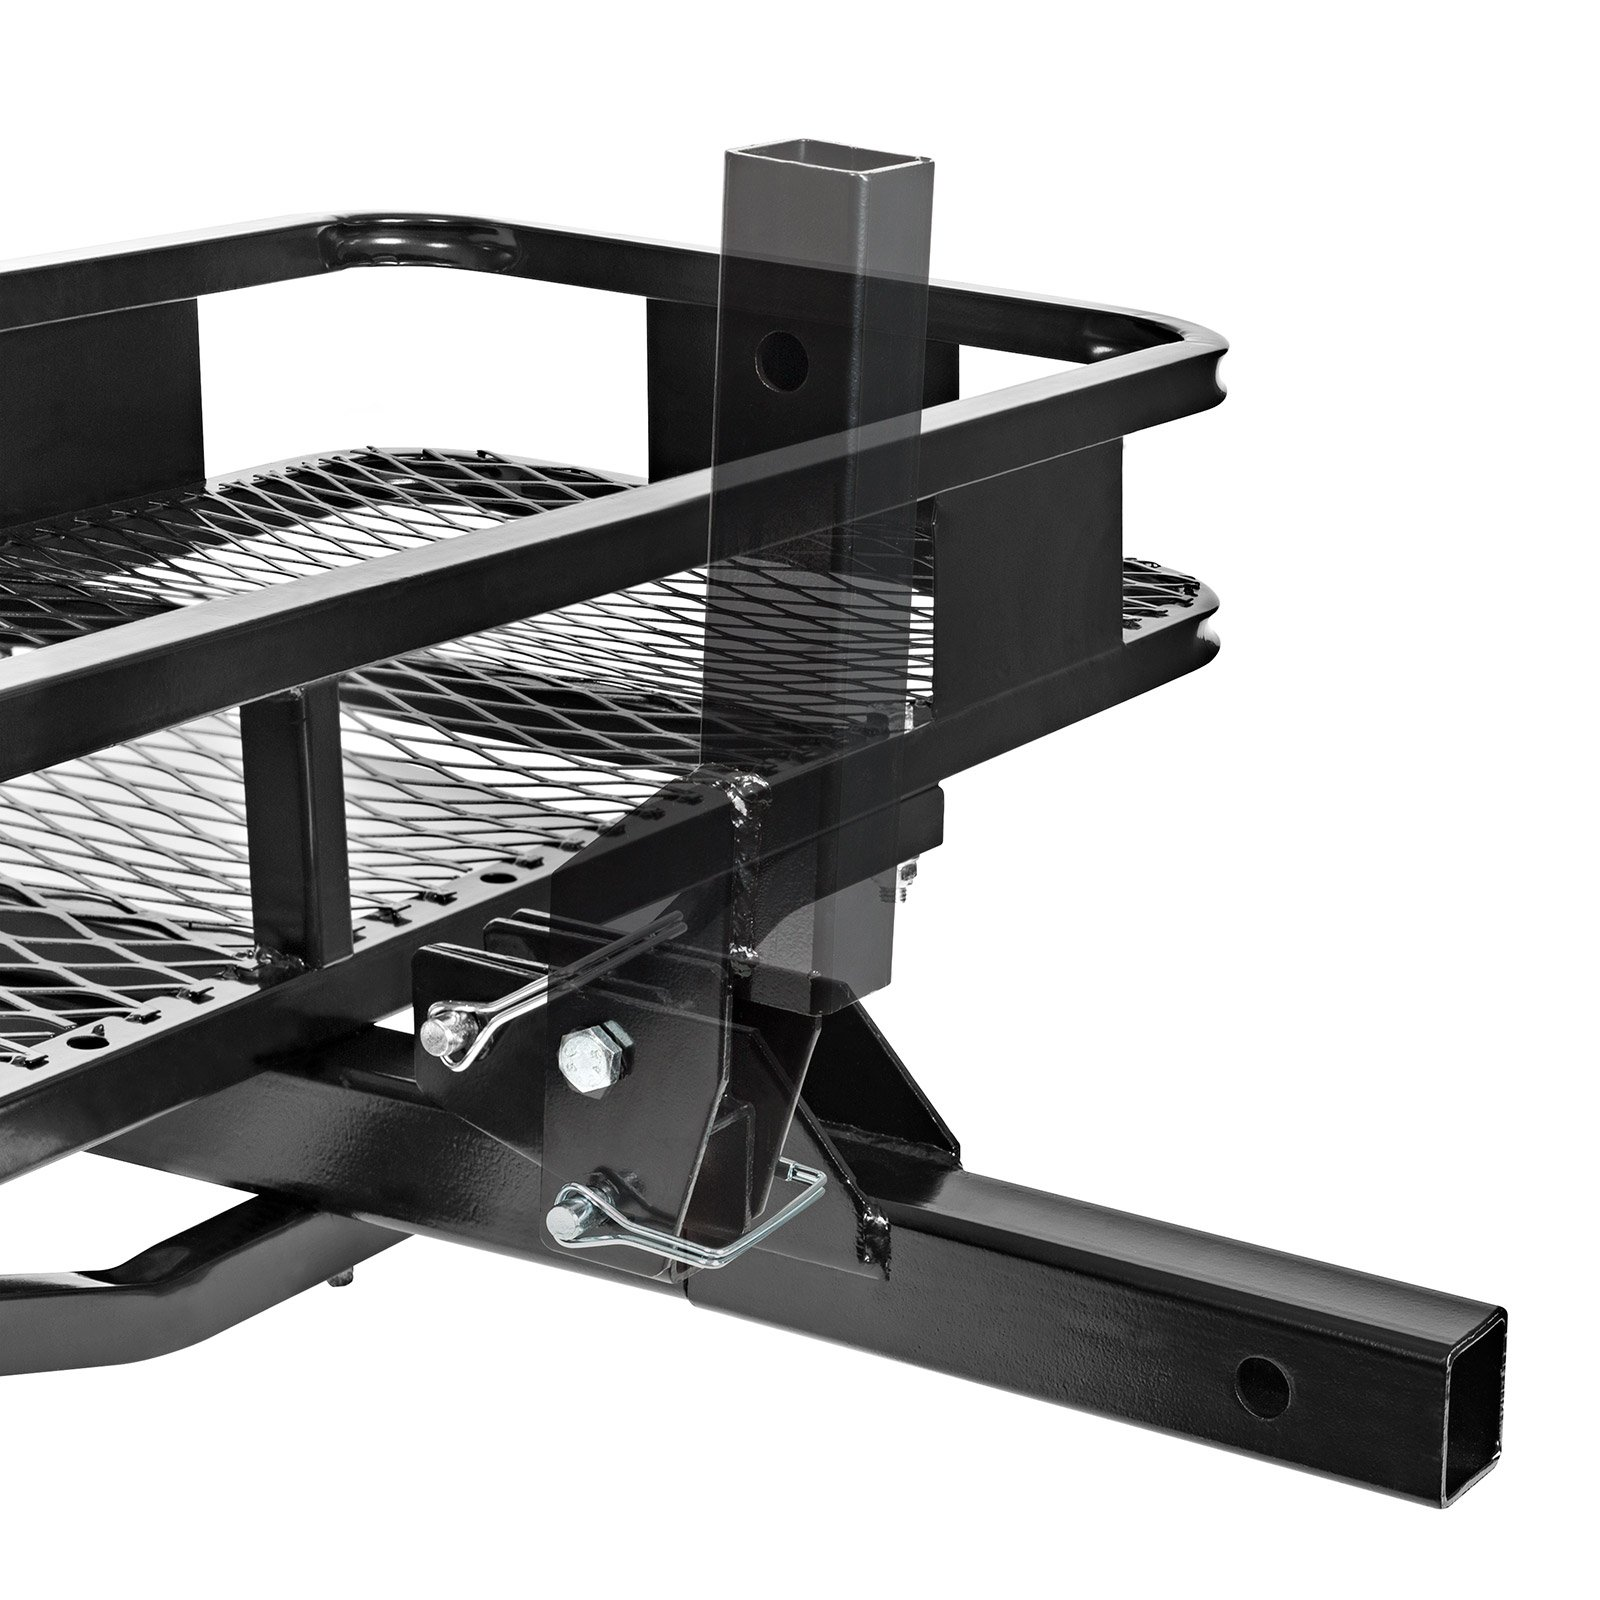 Direct Aftermarket Folding Hitch Cargo Carrier 60 inch Hauler 2 inch Receiver and Cargo Bag Combo by Direct Aftermarket (Image #5)